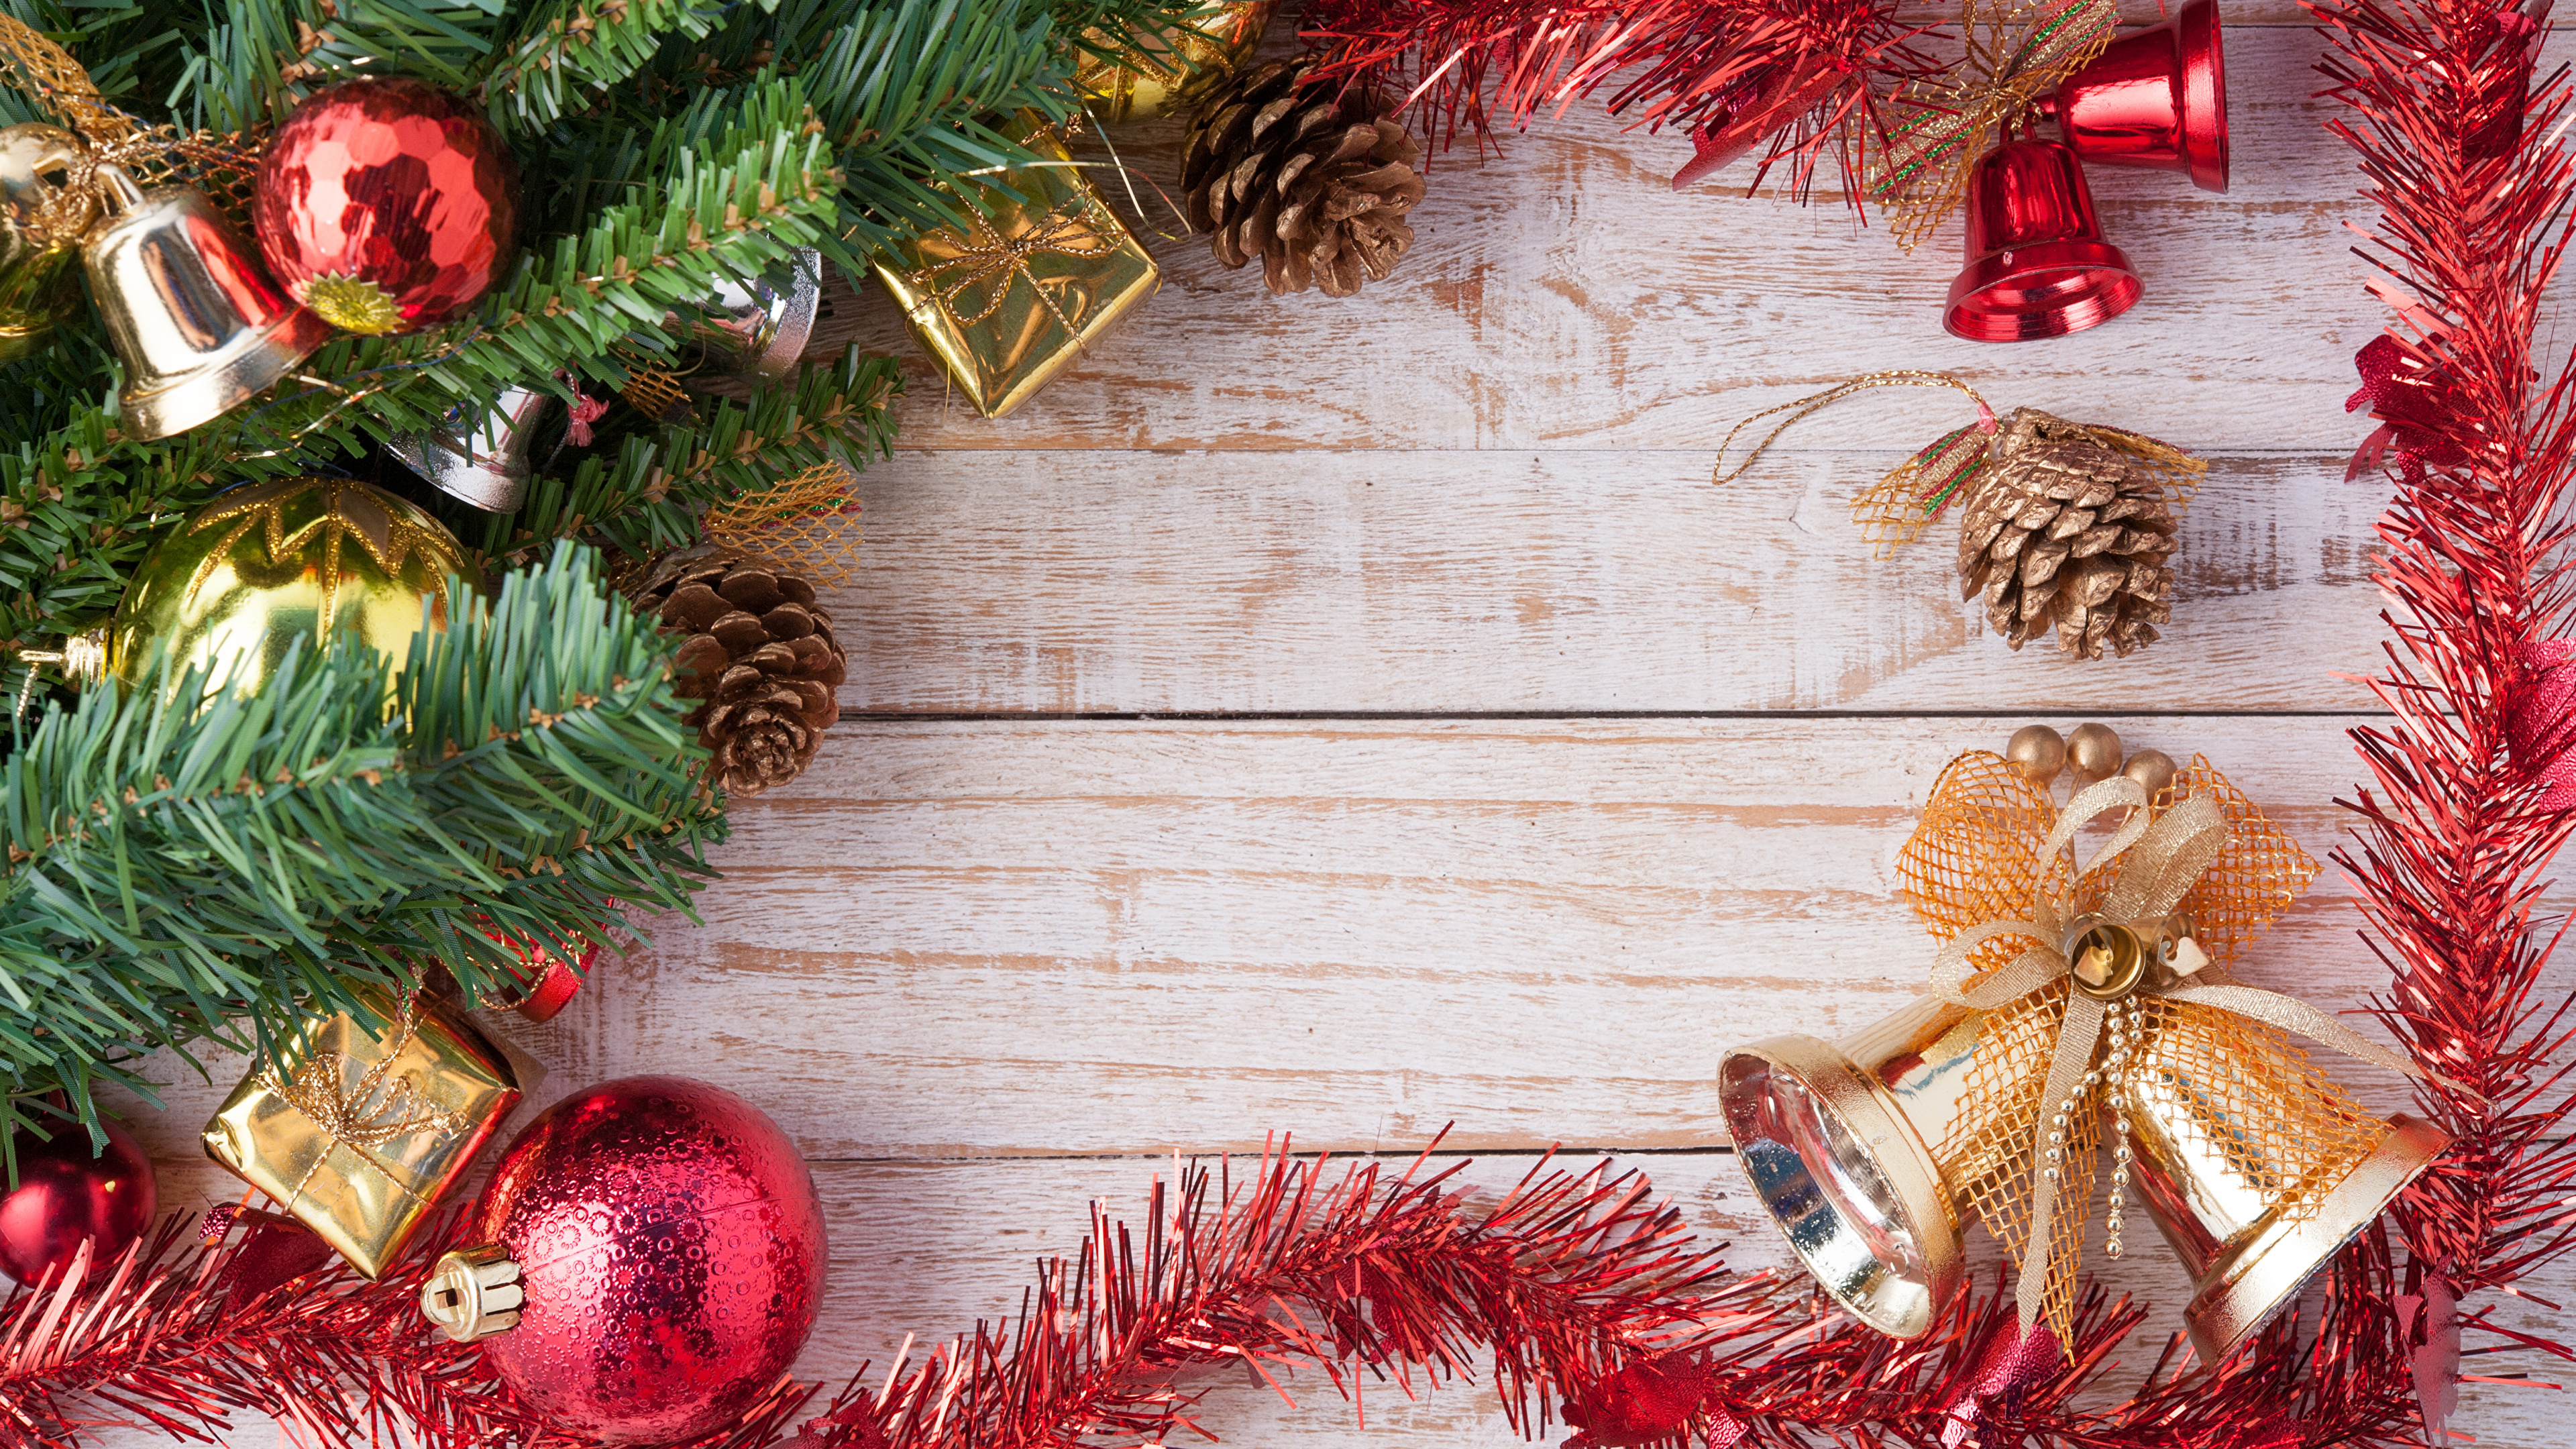 Wallpaper Christmas Bells Balls Branches Pine Cone Wood